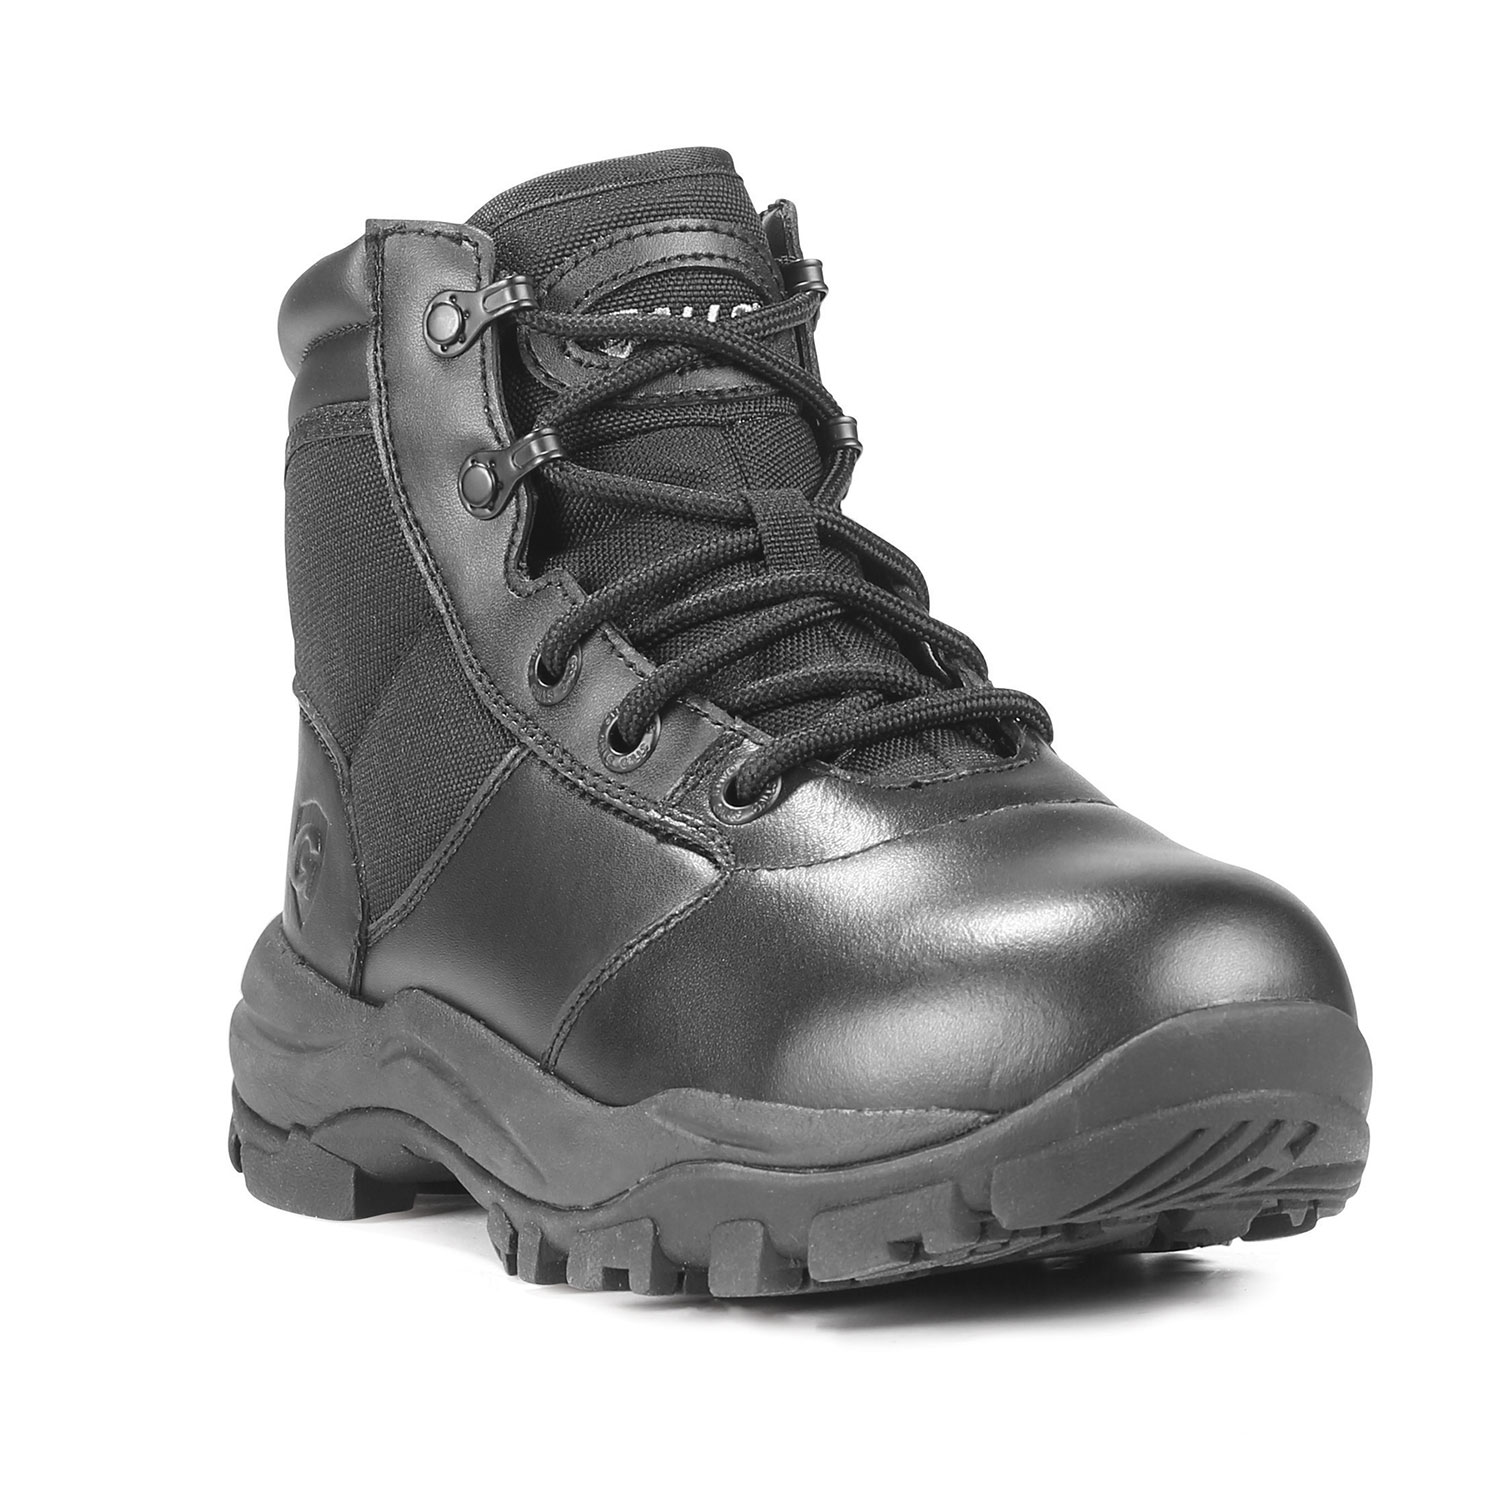 Military Army Amp Tactical Duty Boots From Nike Oakley